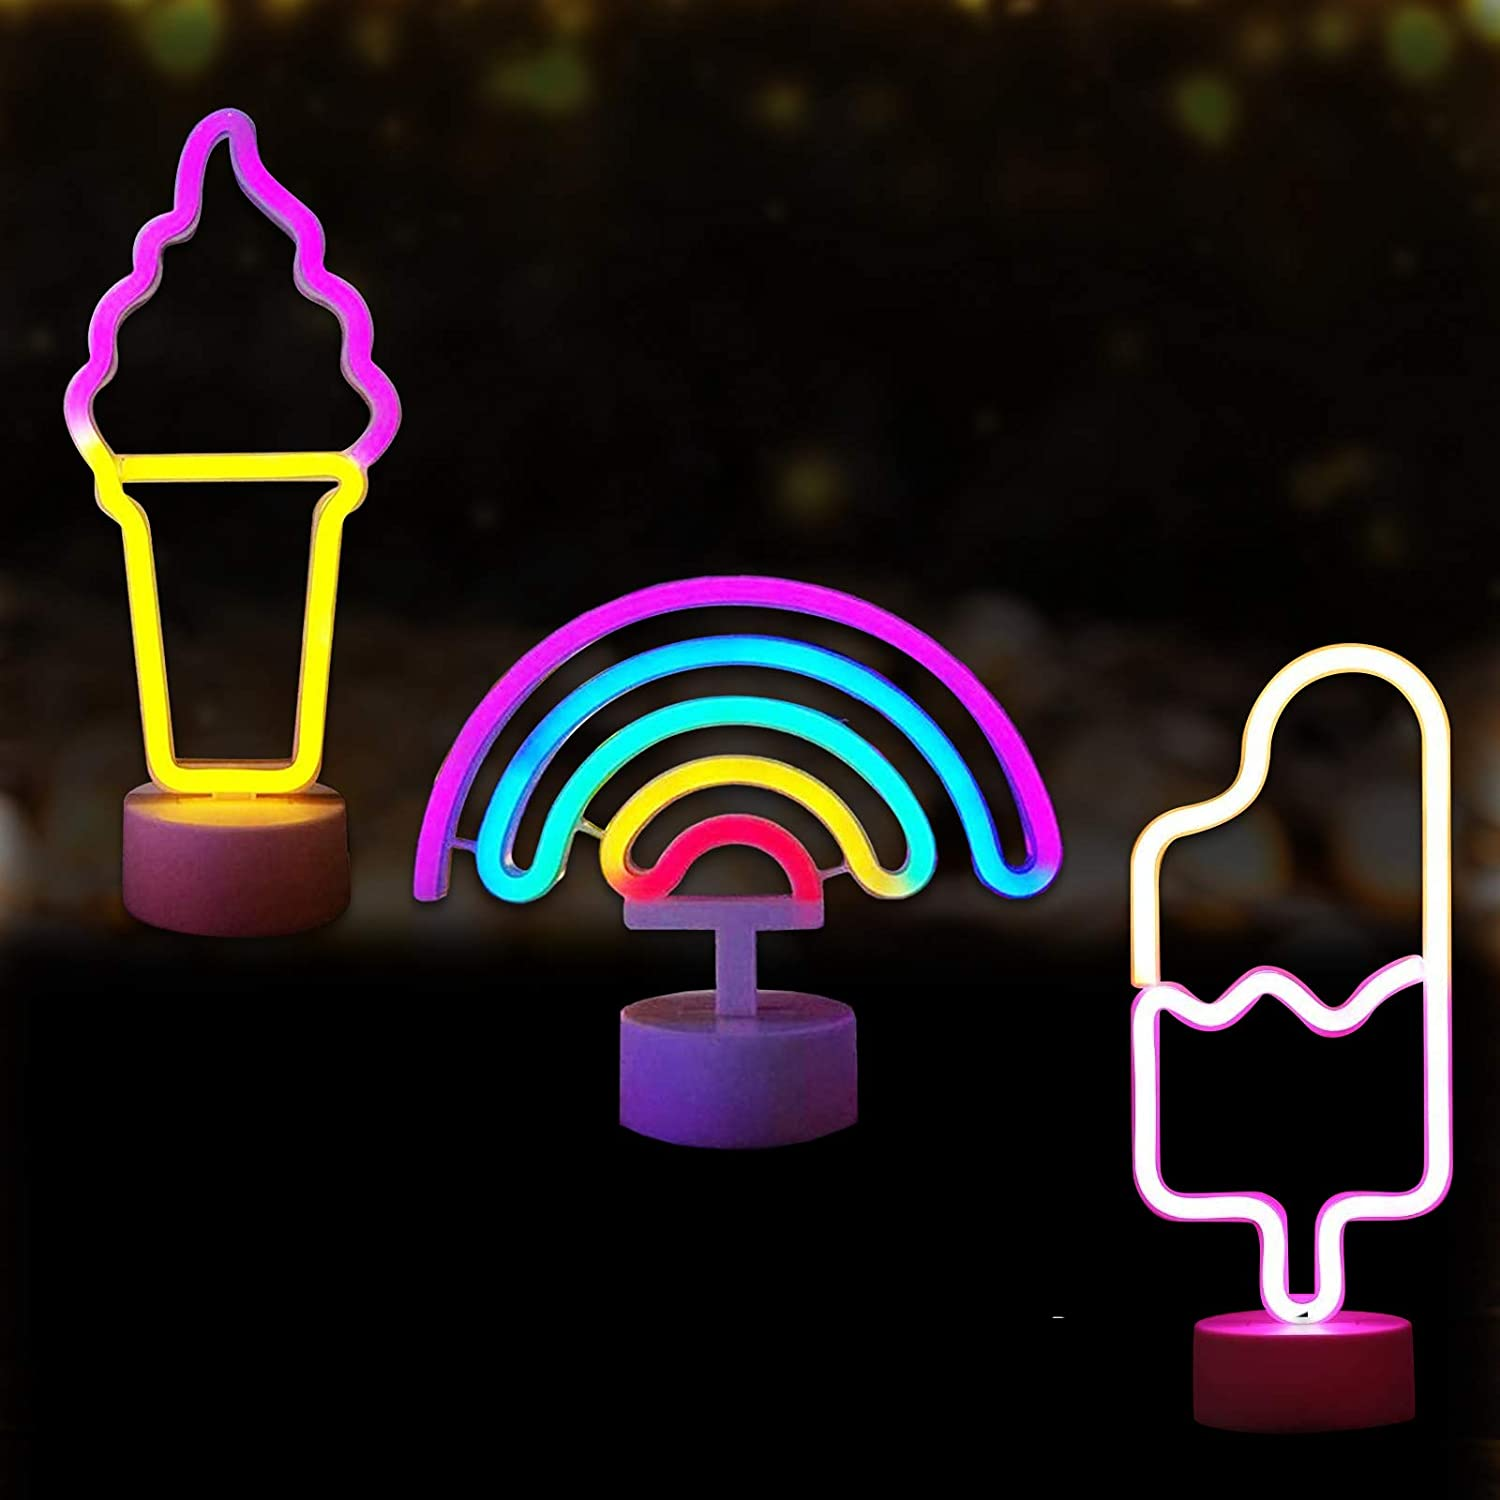 3 Pcs Rainbow Neon Sign Light with Ice Cream and Popsicle Led Neon Light, Wall Decor Colorful Neon Light with Holder, Wall Decoration for Bedroom for Girls Boys, Neon Party Supplies